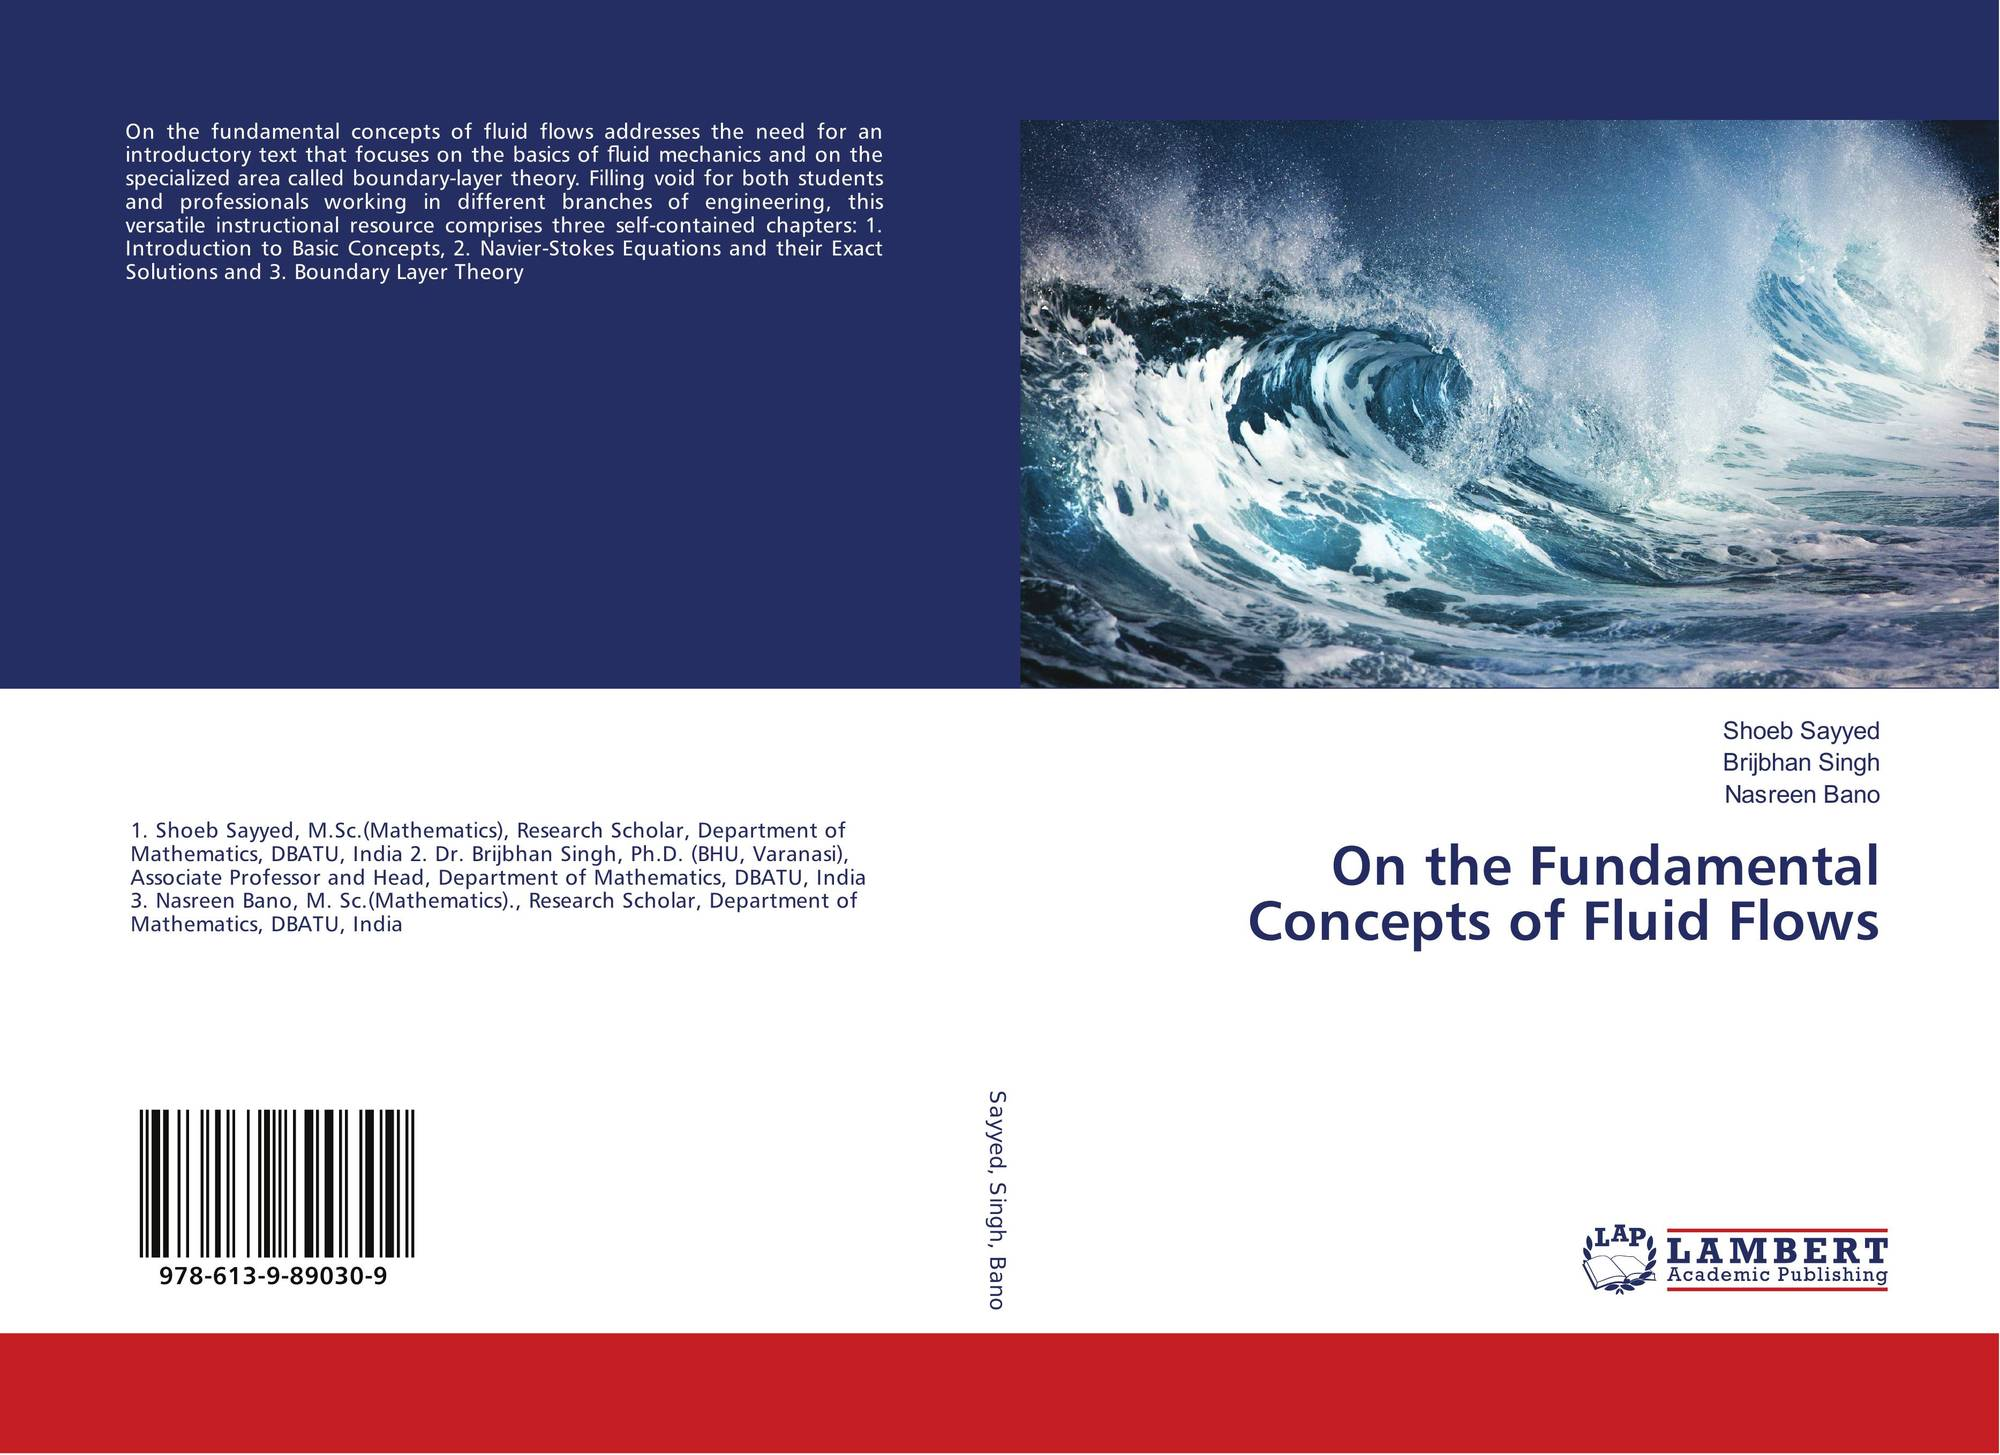 On the Fundamental Concepts of Fluid Flows, 978-613-9-89030